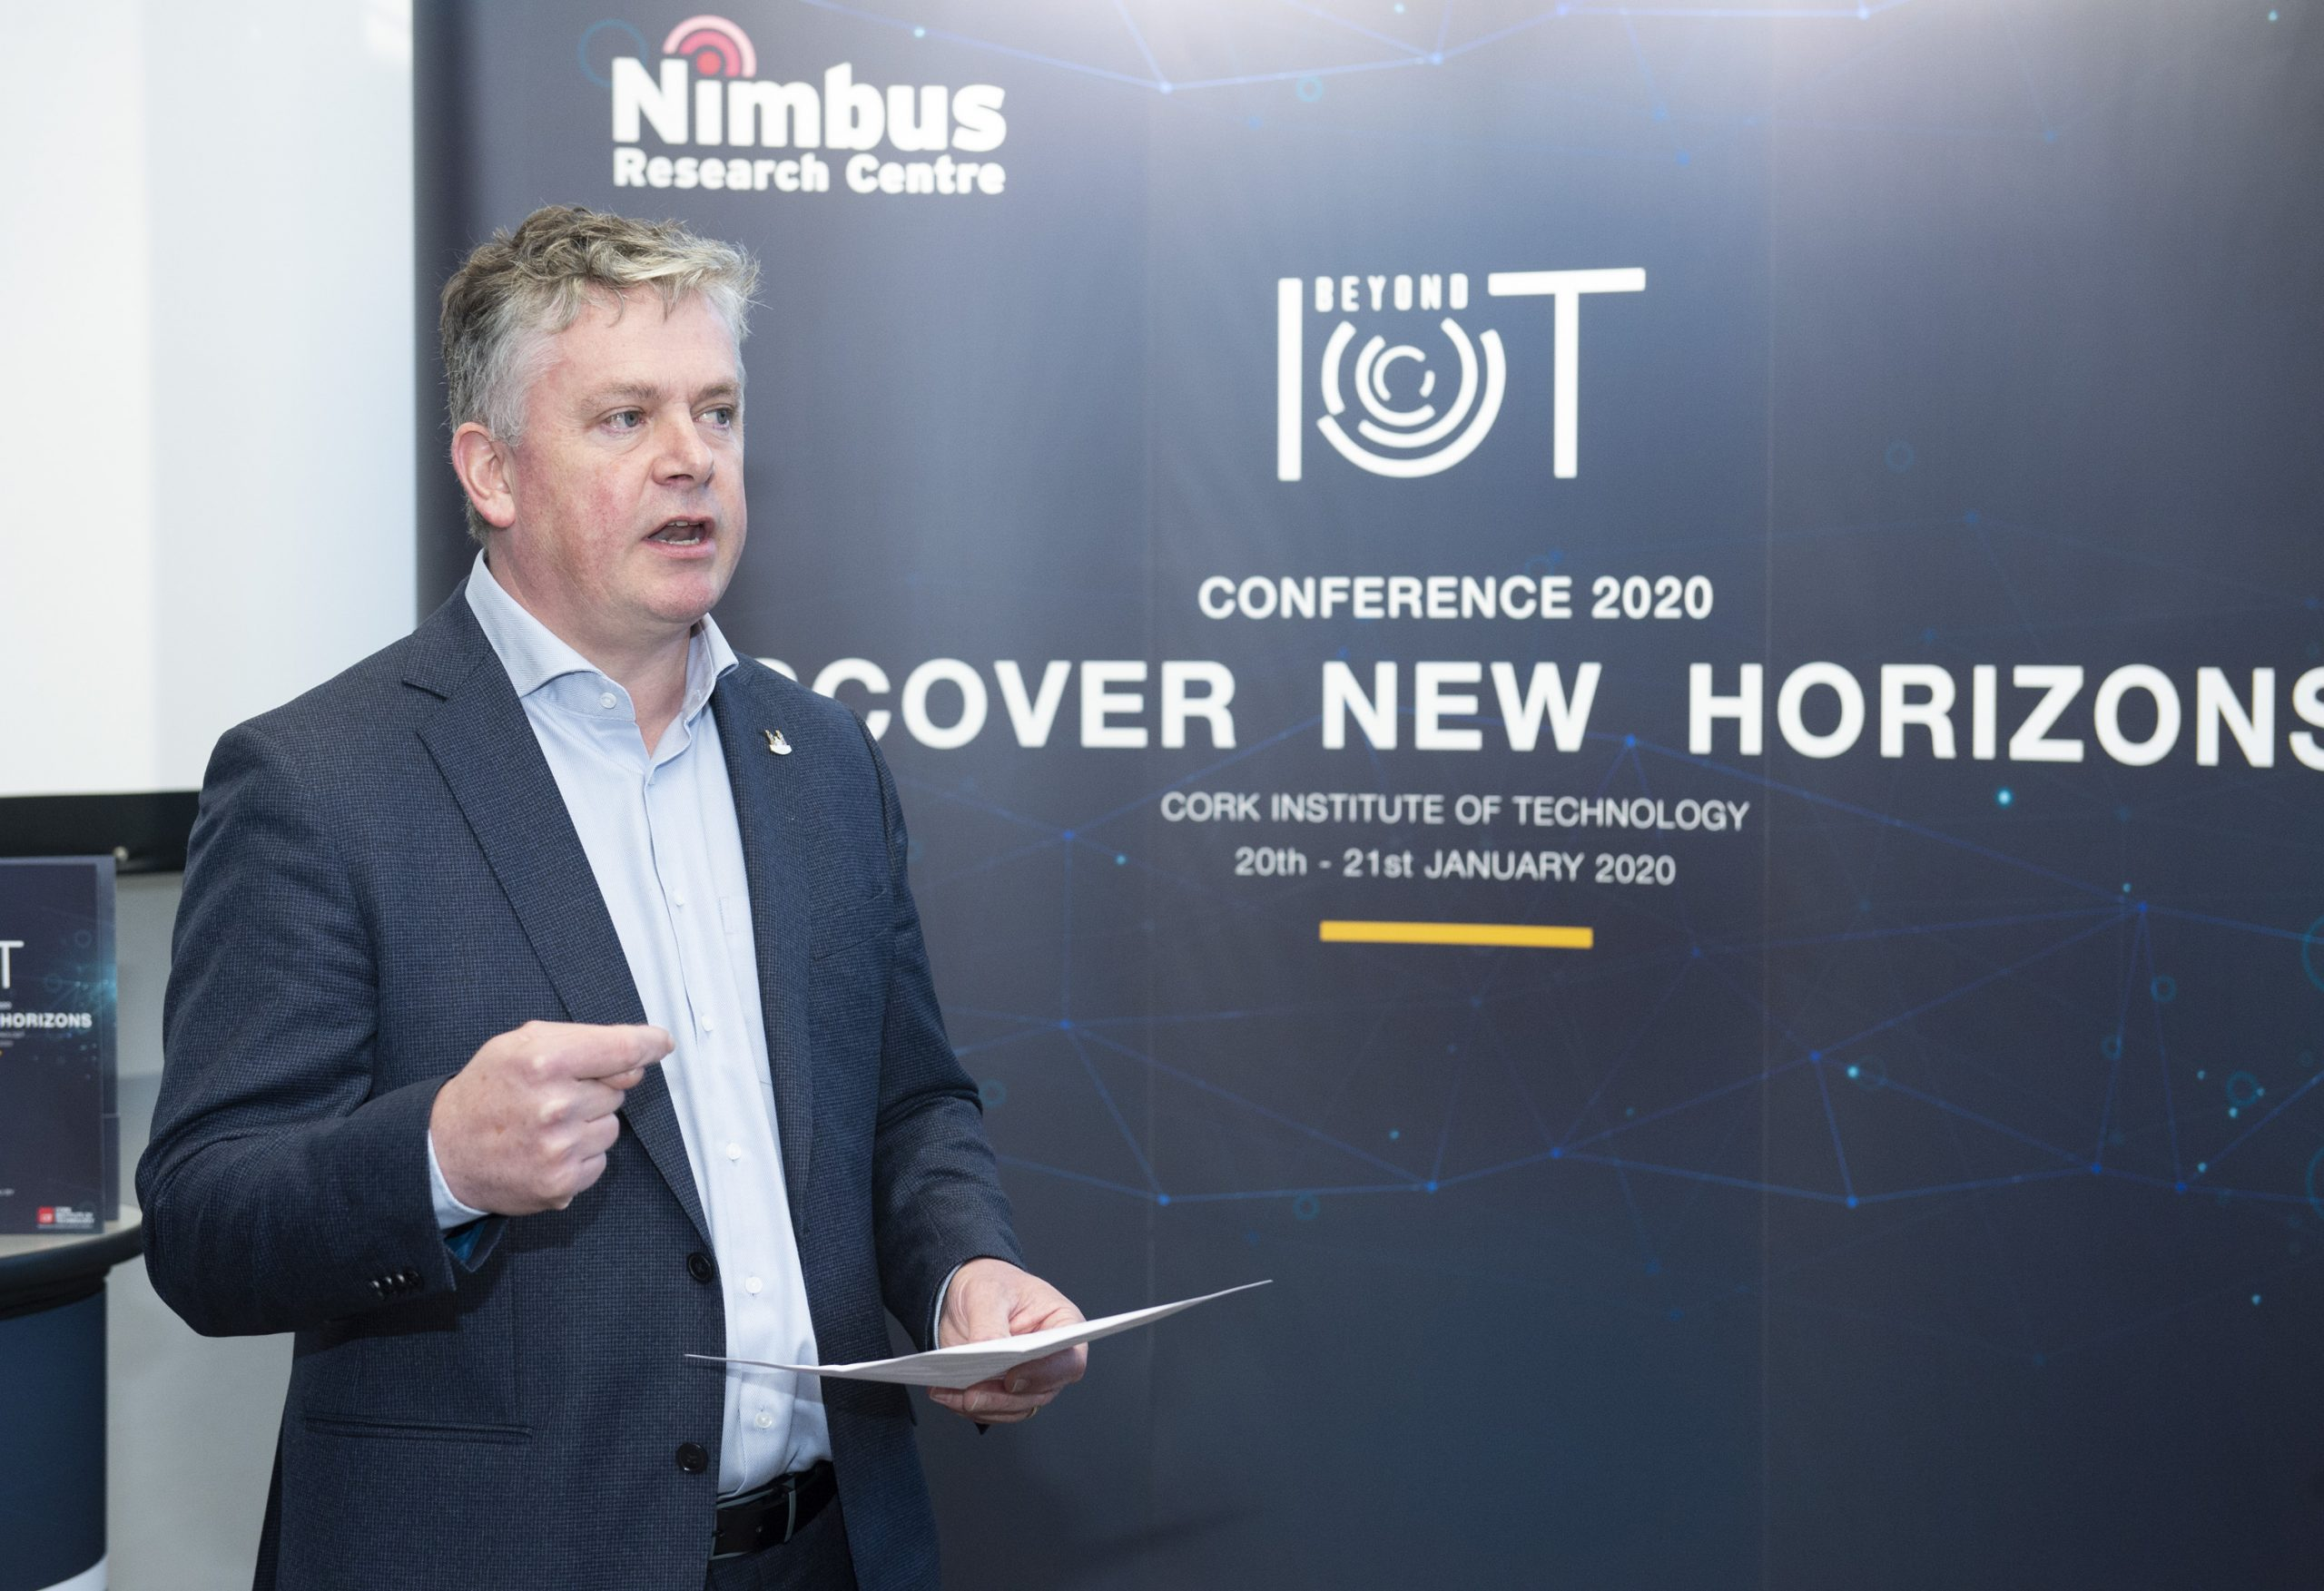 The Nimbus Research Centre – developing technologies that address real needs